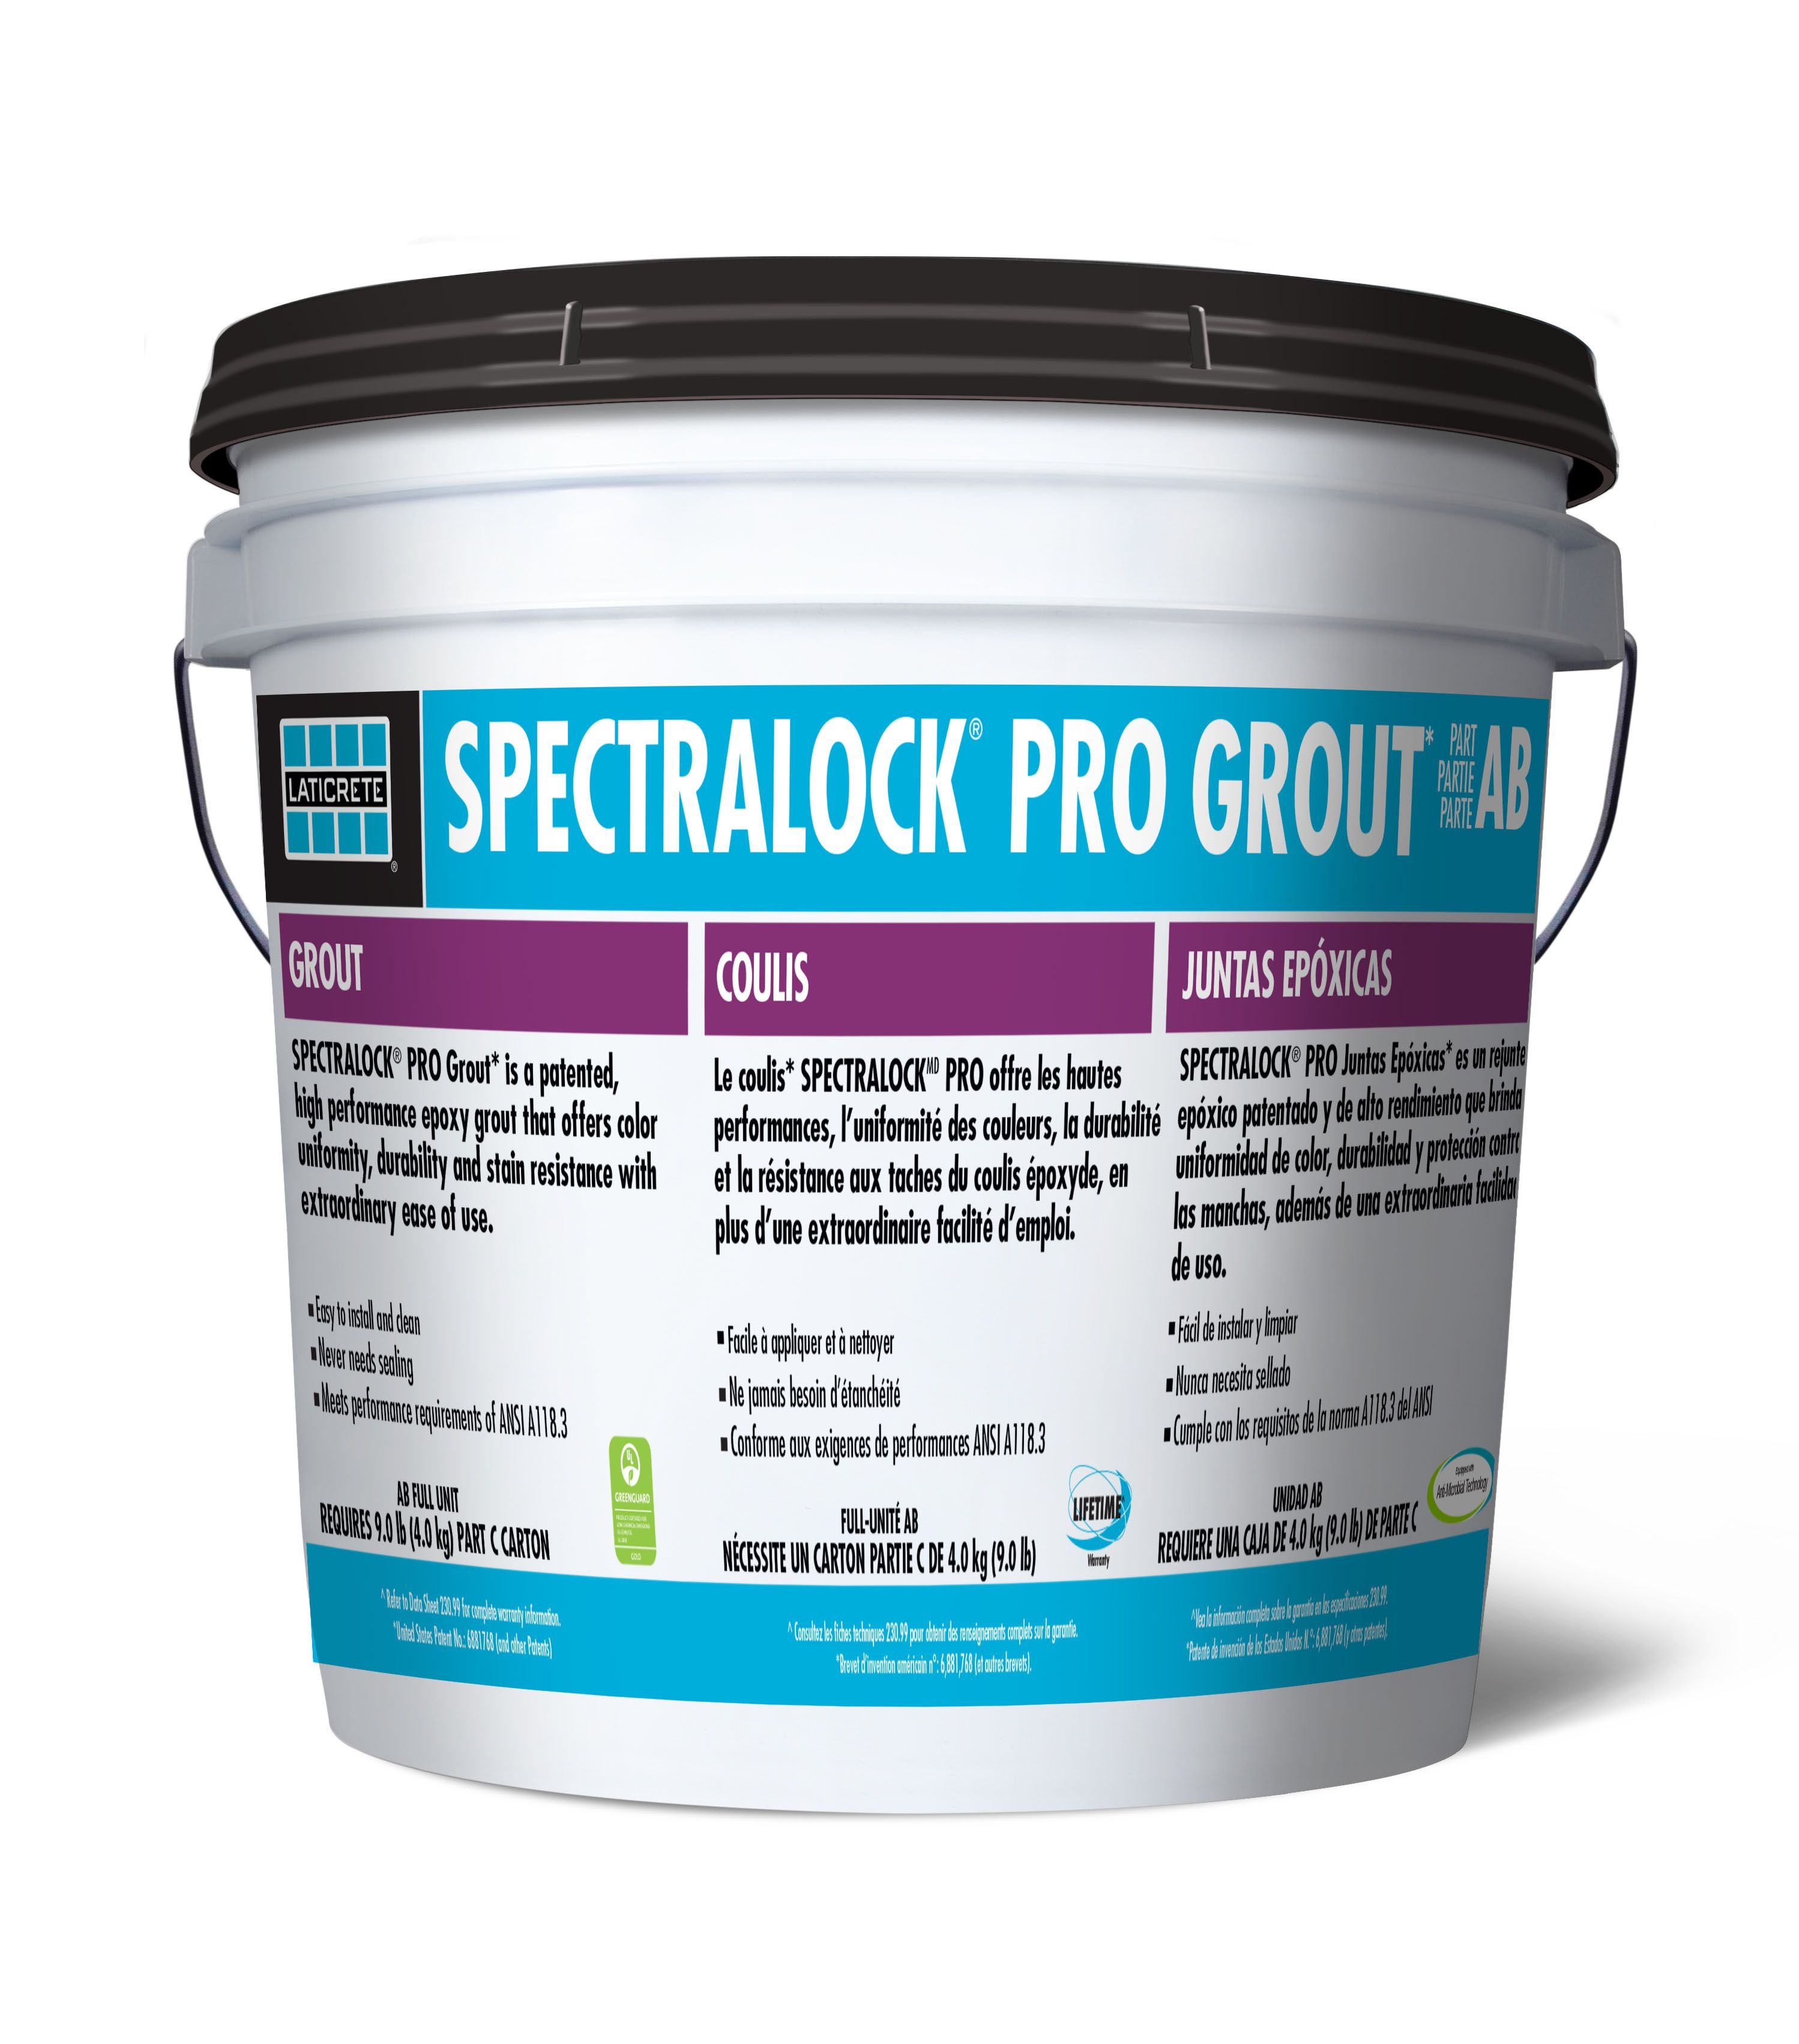 Laticrete Spectralock Pro Grout Is A Patented High Performance Epoxy Grout That Offers Color Uniformity Durability And Stain Resistan Epoxy Grout Grout Master Bath Remodel